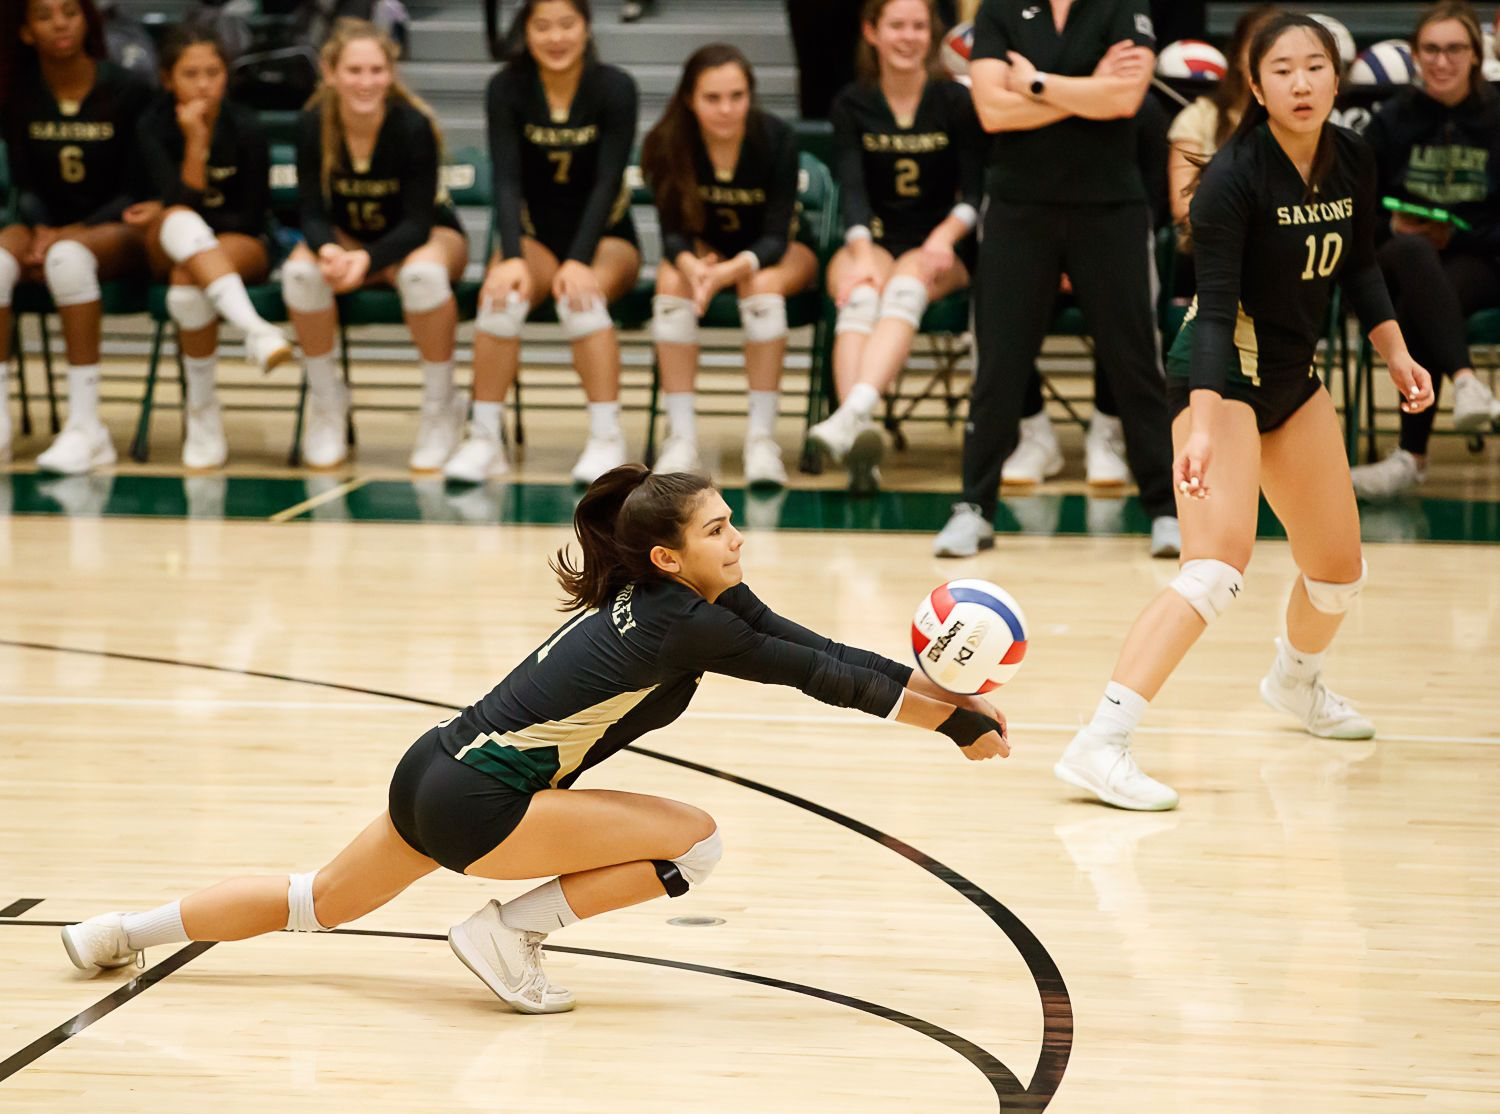 Langley Saxons volleyball 10